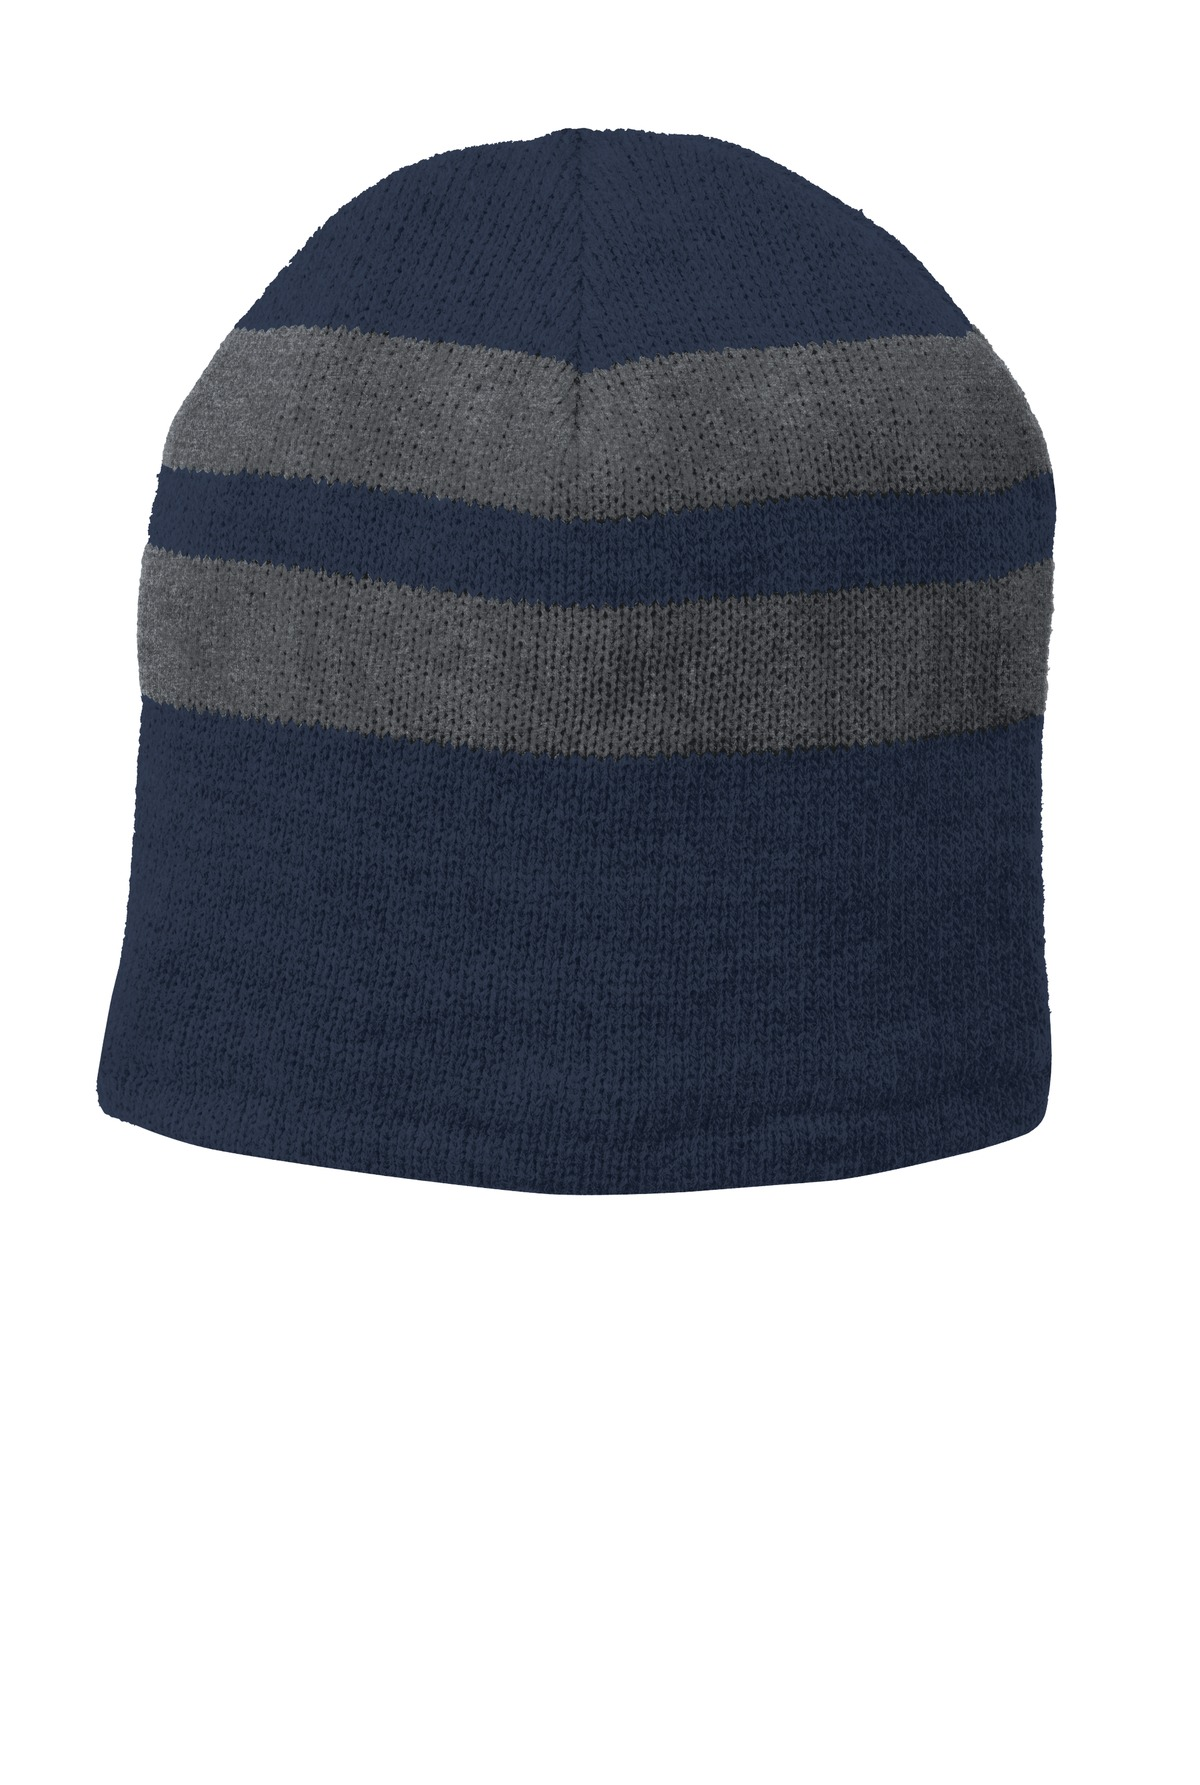 Port & Company ®  Fleece-Lined Striped Beanie Cap. C922 - Navy/ Athletic Oxford